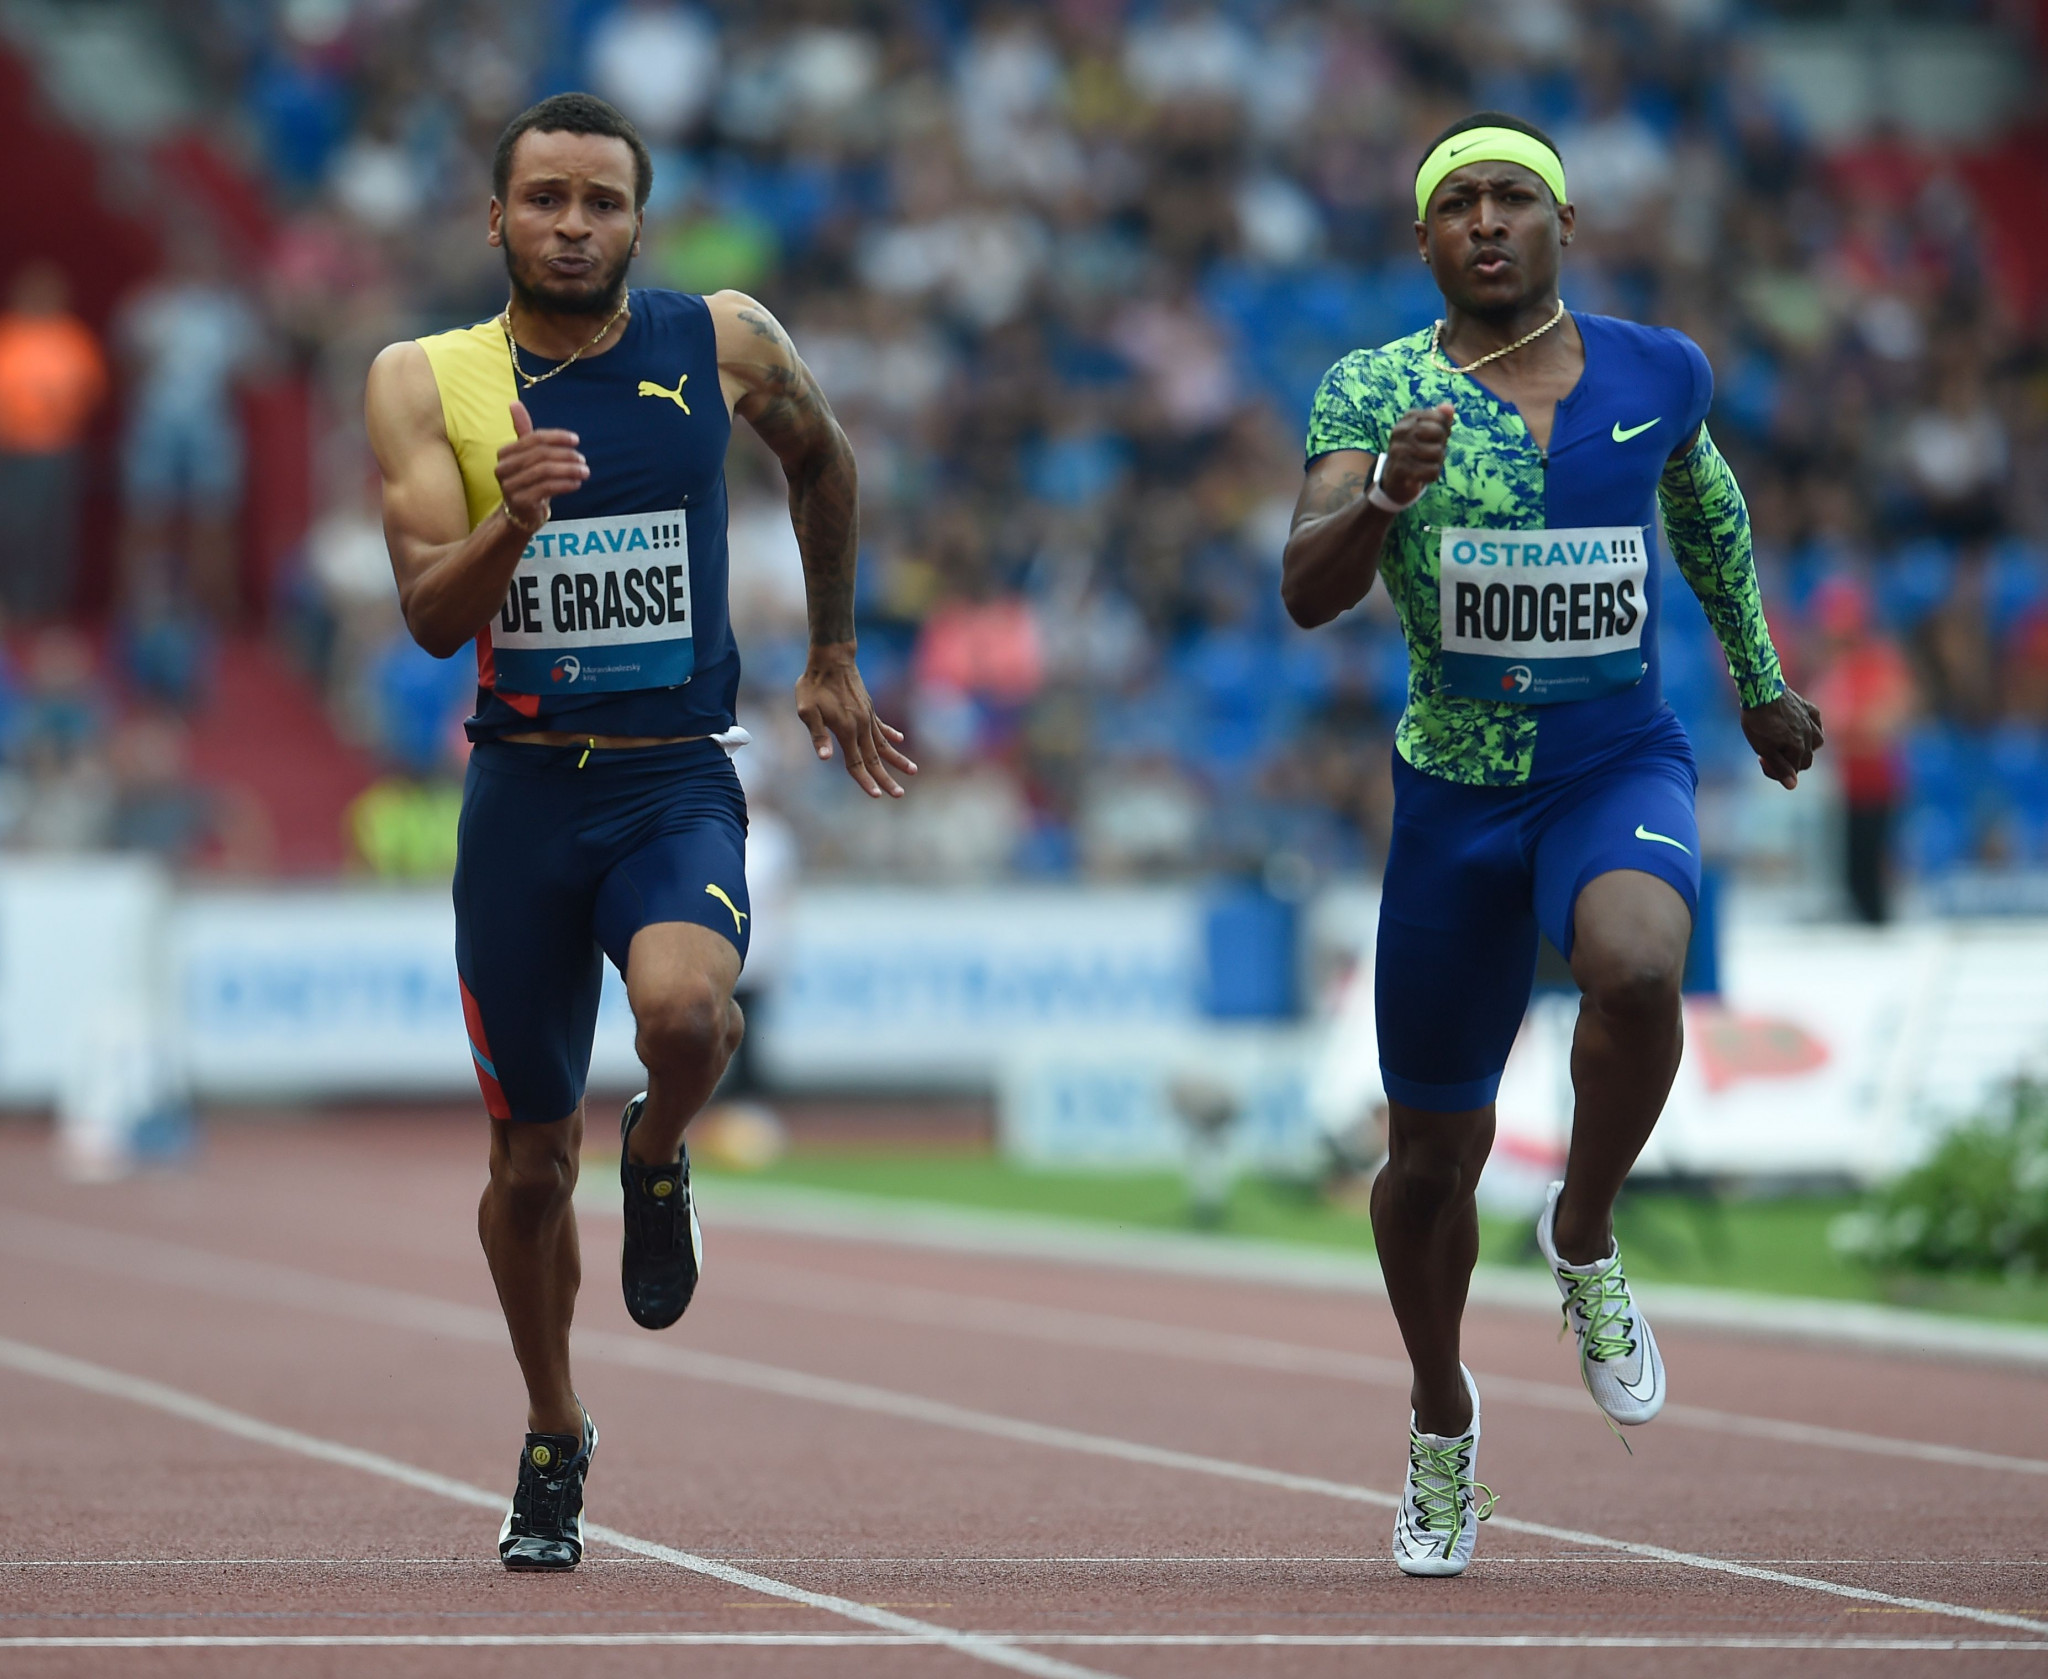 Andre De Grasse of Canada and Mike Rodgers of United States compete during the 100m at the 2019 Golden Spike Athletics meeting in Ostrava, Czech Republic © Getty Images